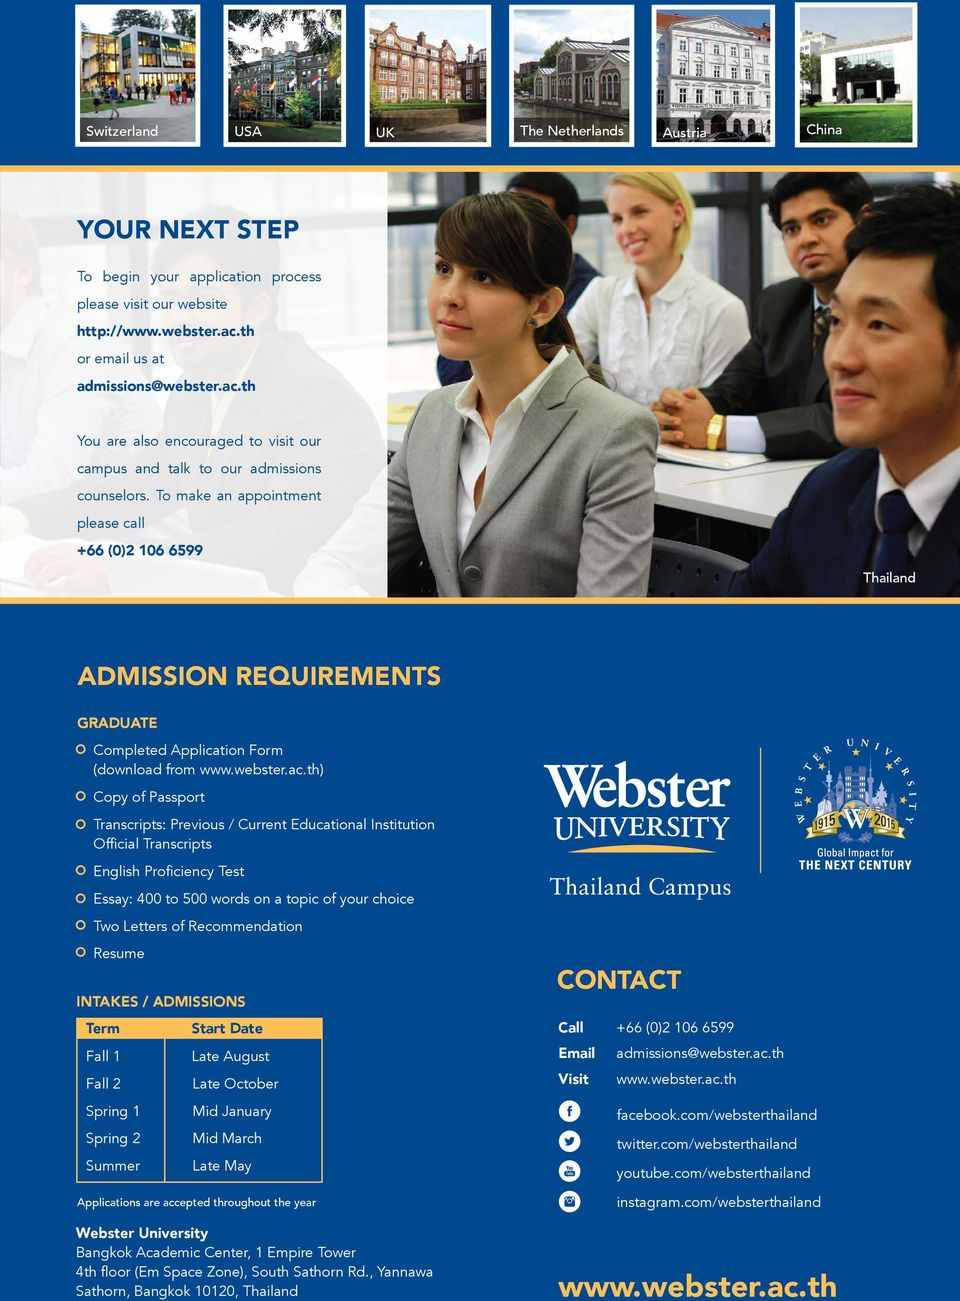 To make an appointment please call +66 (0)2 106 6599 Thailand ADMISSION REQUIREMENTS GRADUATE Completed Application Form (download from www.webster.ac.